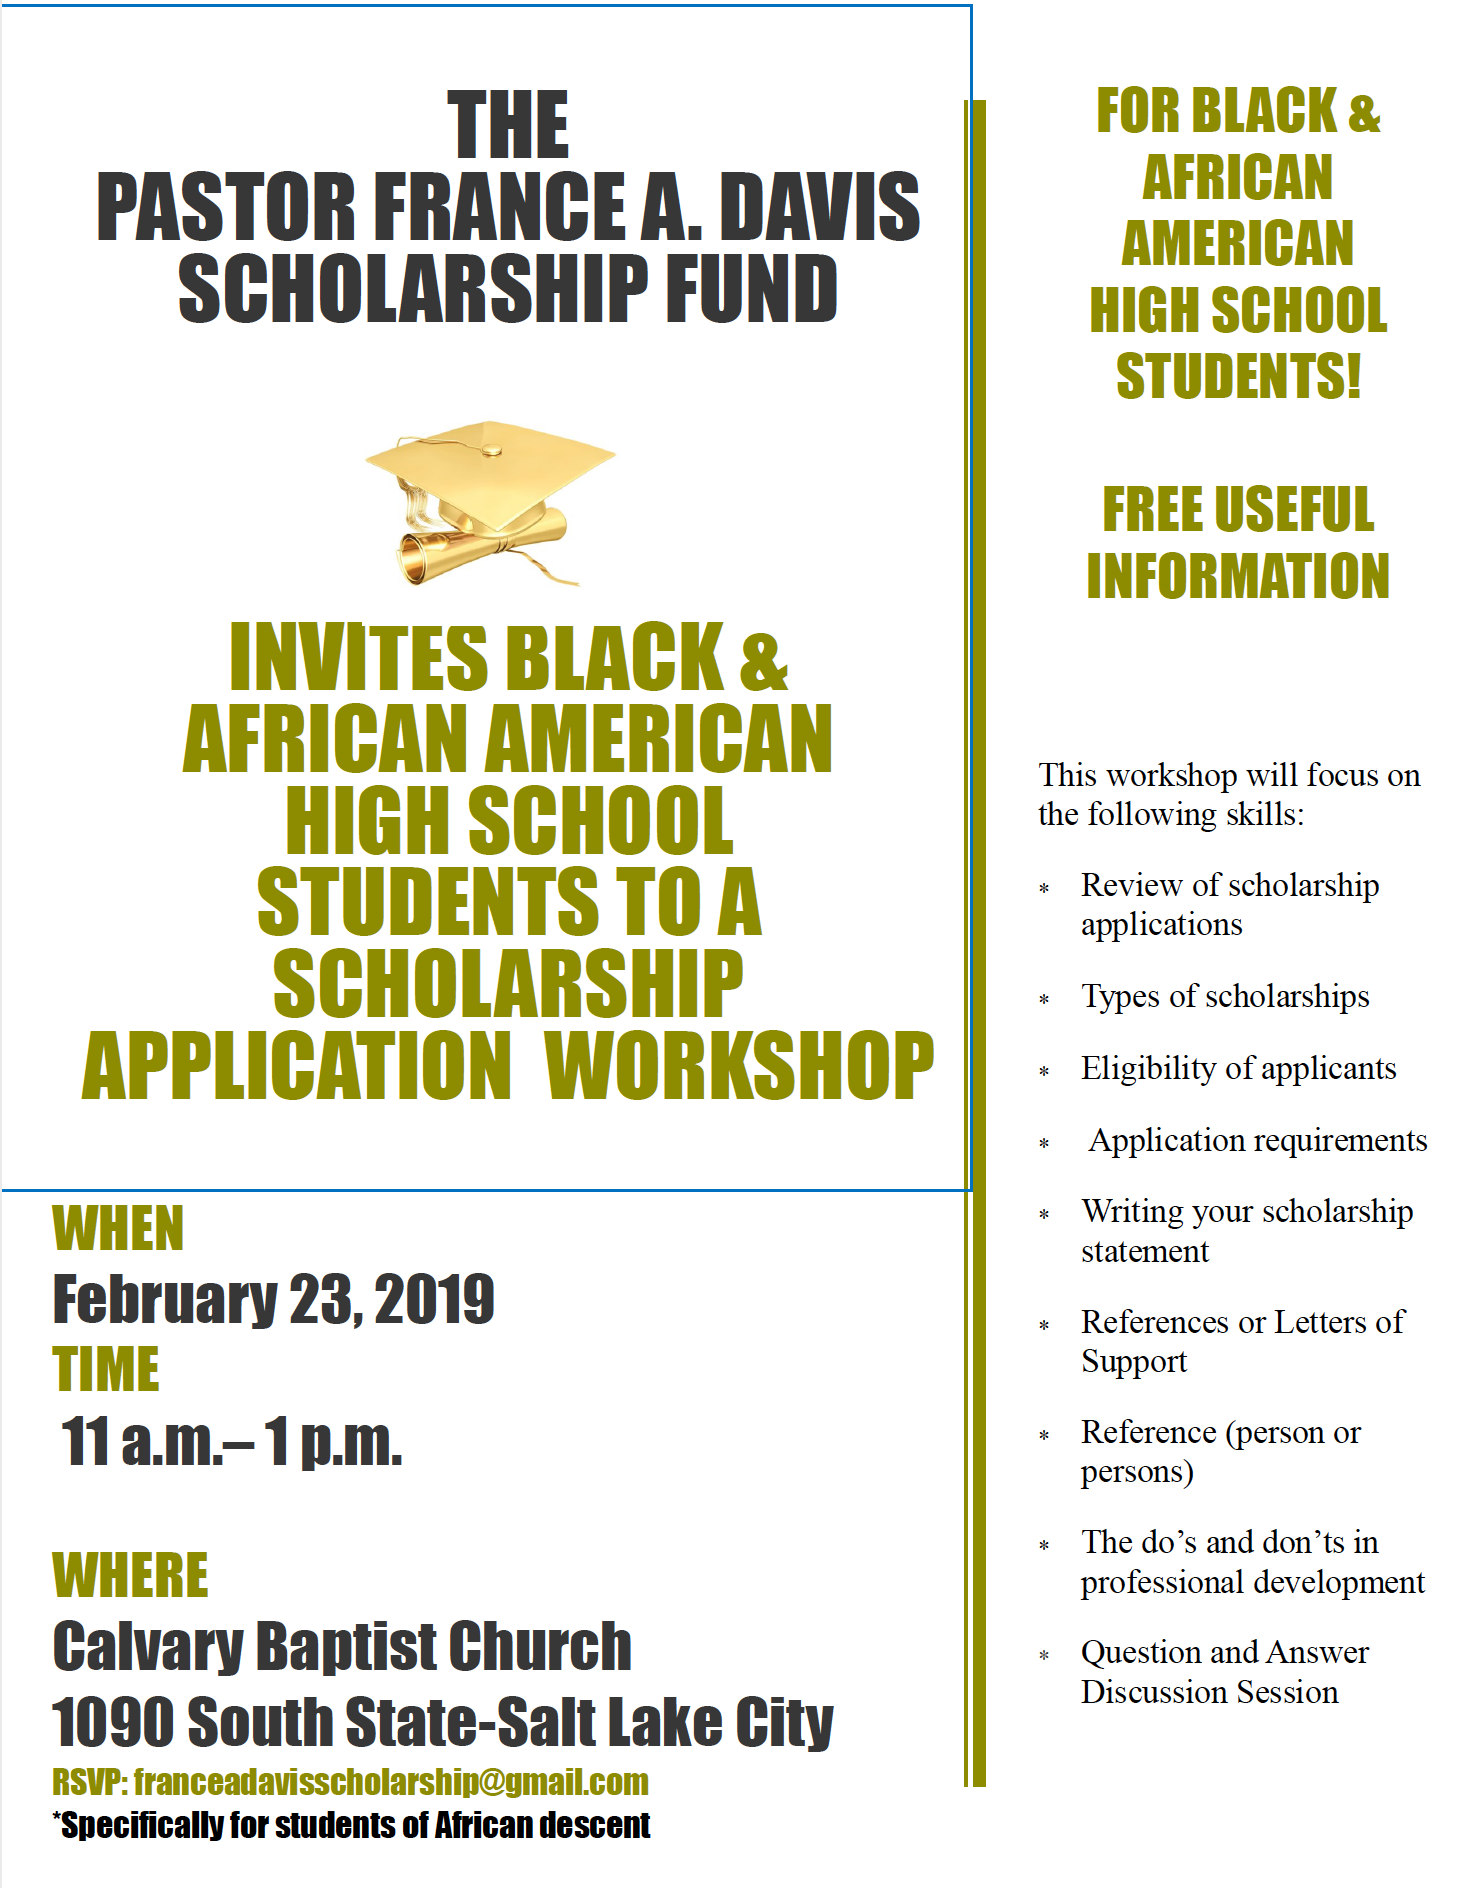 The Pastor France A. Davis Scholarship Fund invites Black and African American high school students to a scholarship application workshop.